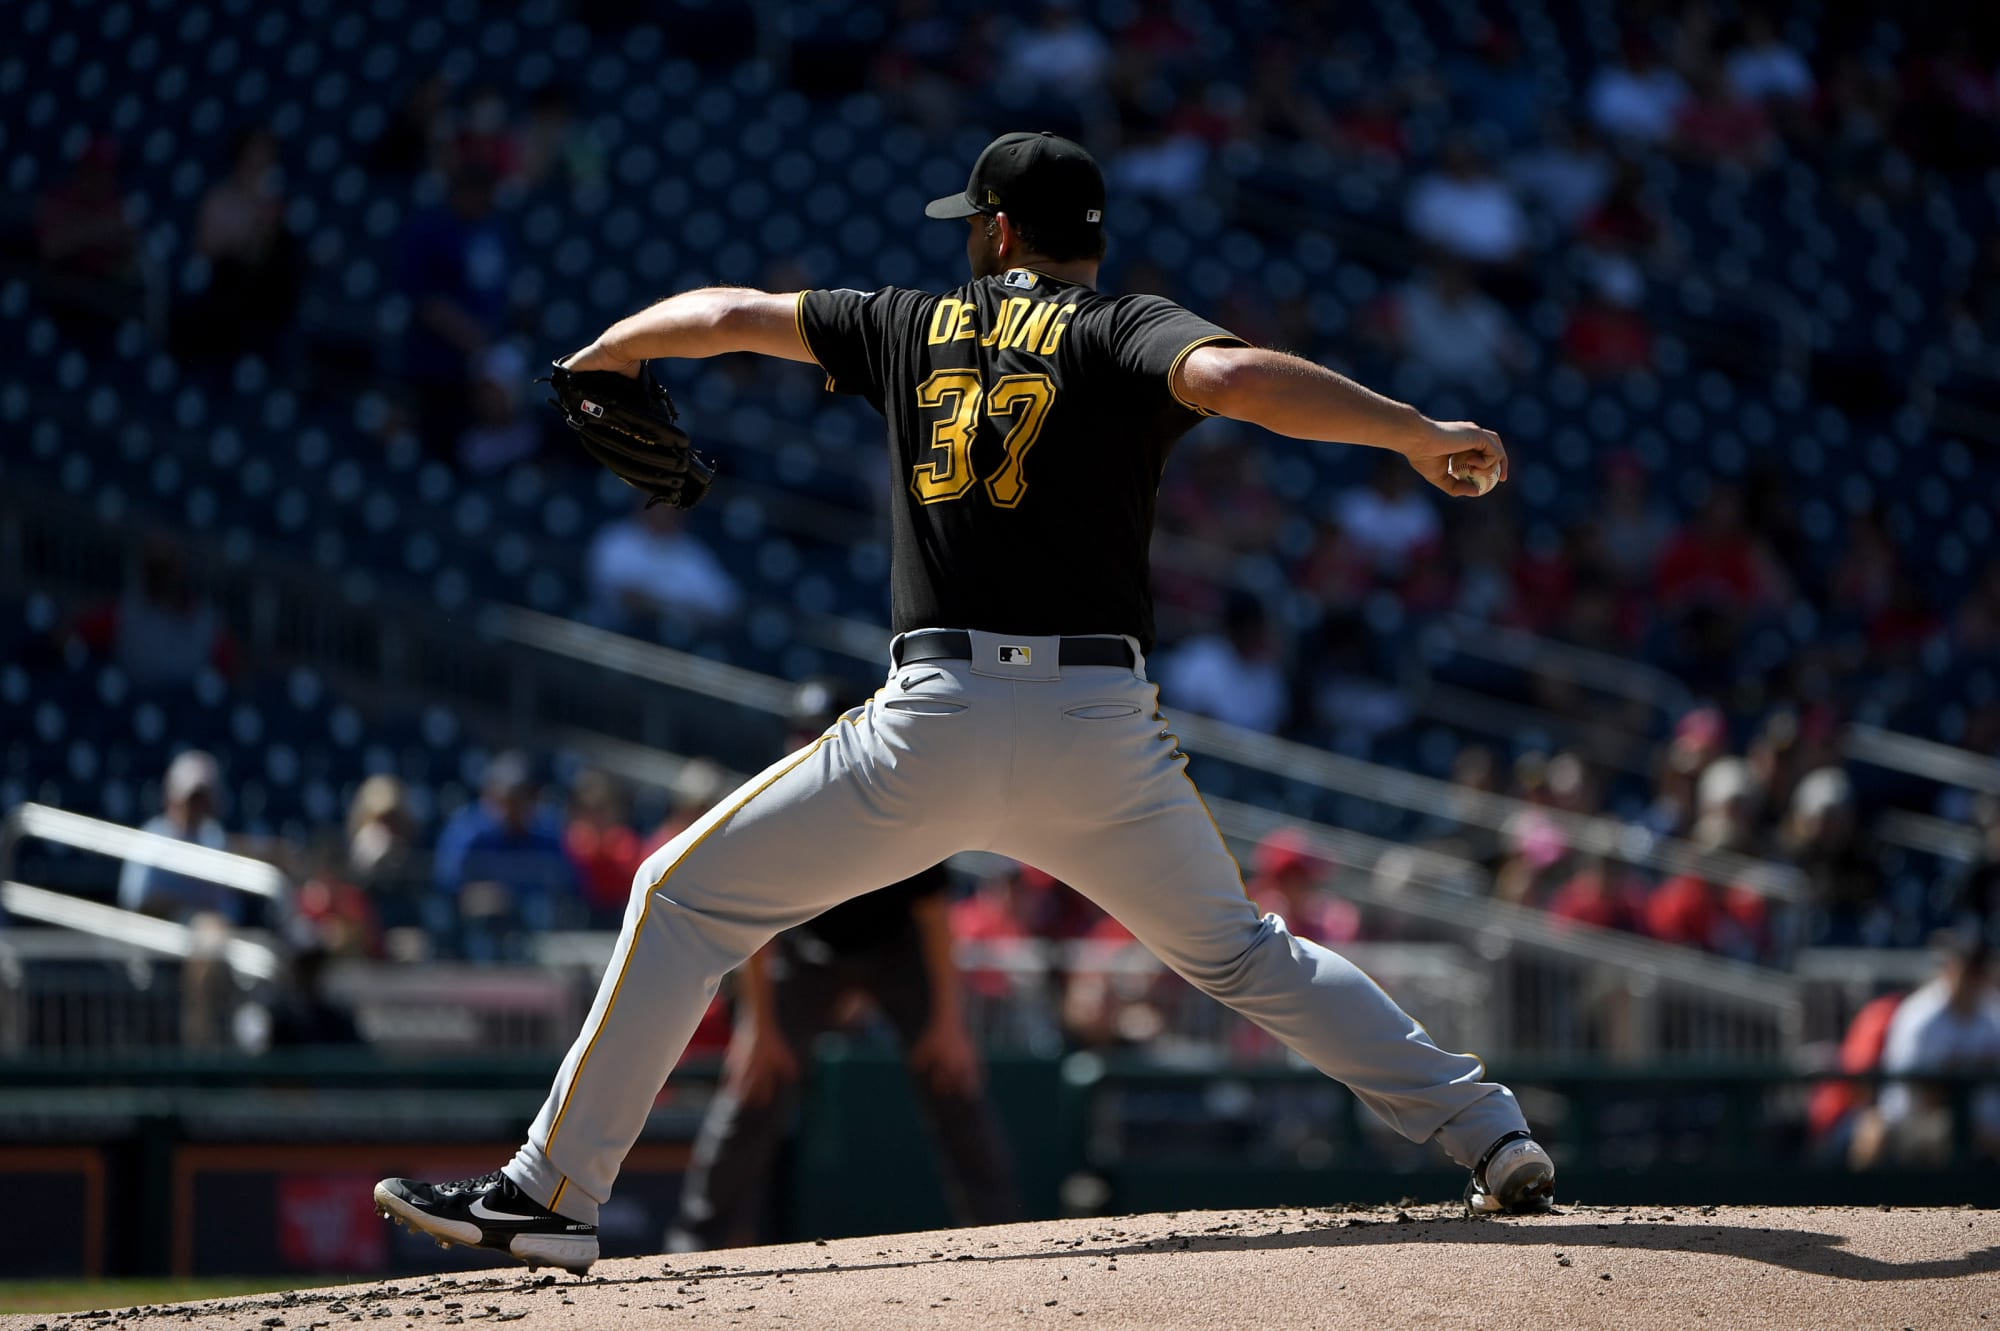 Pittsburgh Pirates Fall 3-1 in Series Finale, Swept by Nationals